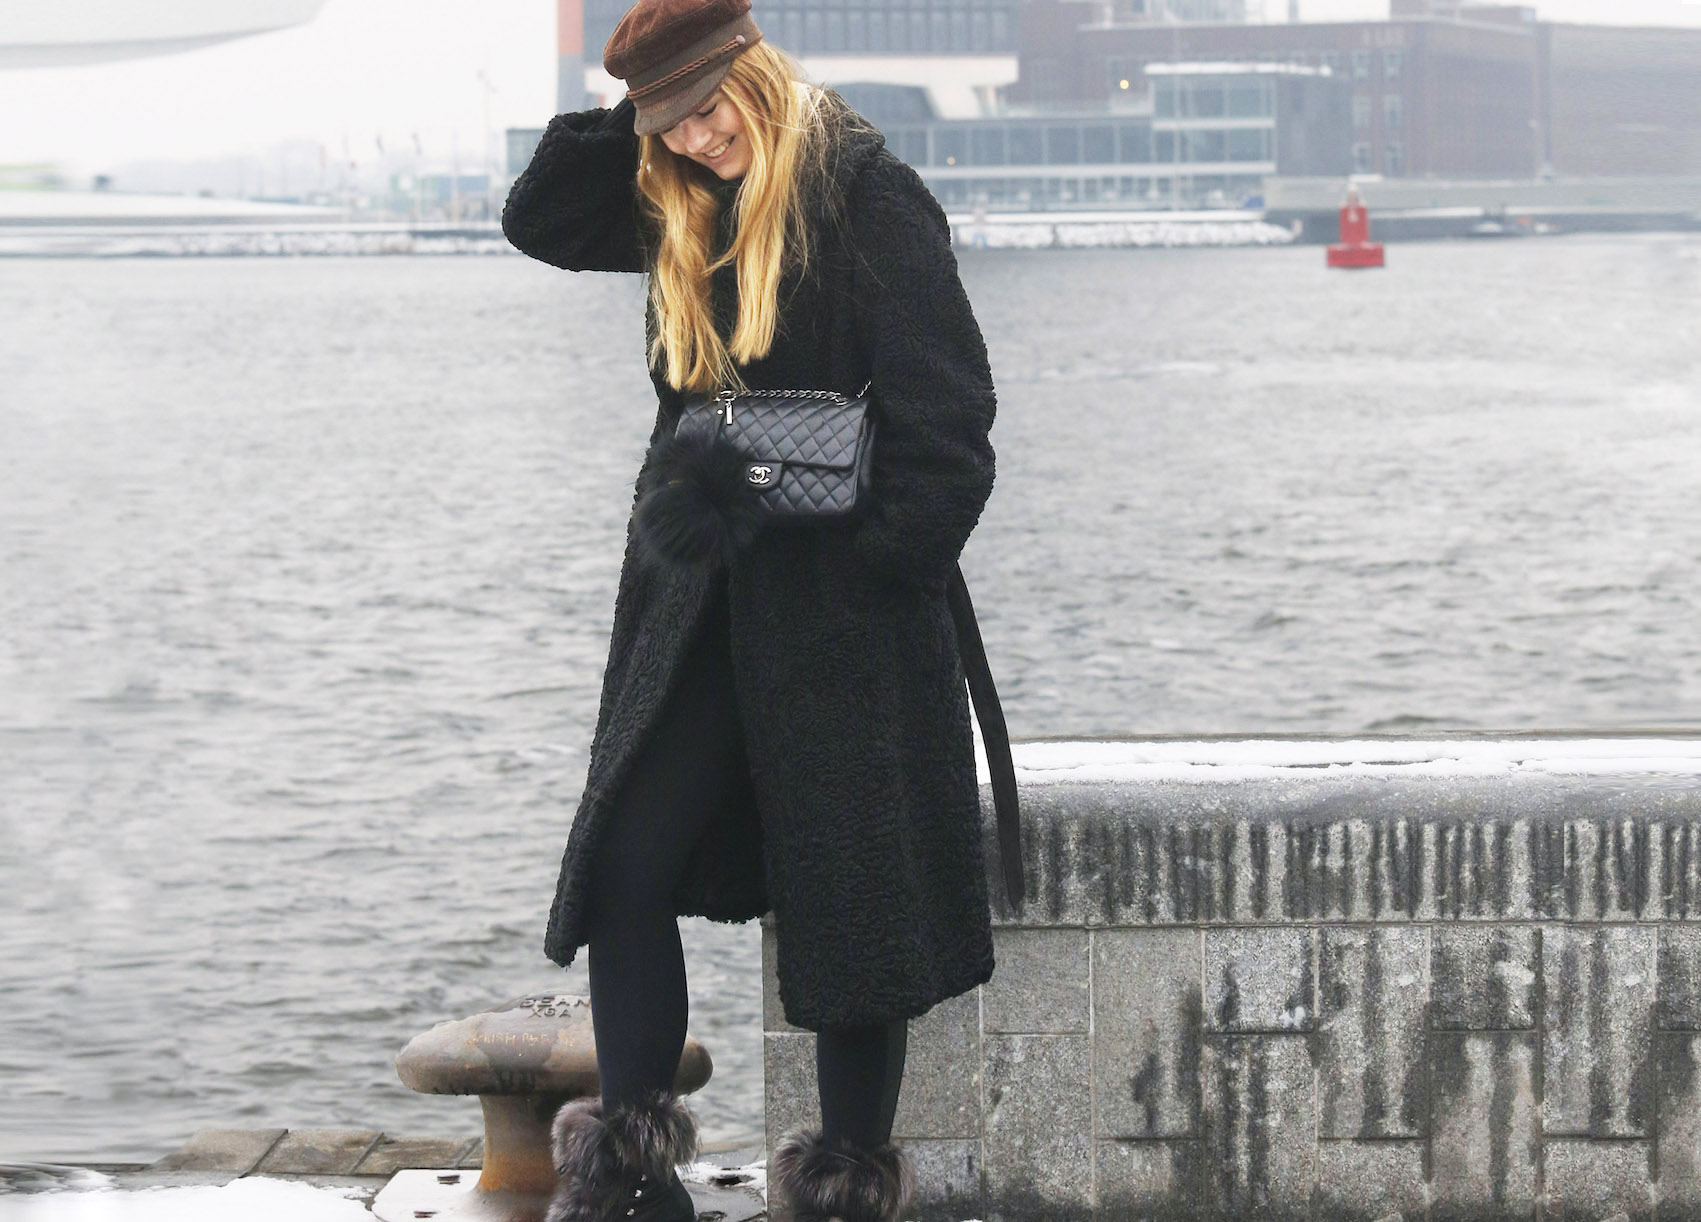 floortjeloves, how to, how to recover from a stressful day, amsterdam, ndsm werf, ndsm, amsterdam north, stress, stress les, how to stress les, fendi, chanel, chanel bag, fur coat, vintage coat, vintage cap, cap, wolford, plan 78, plan 78 project, plan78, plan78 project